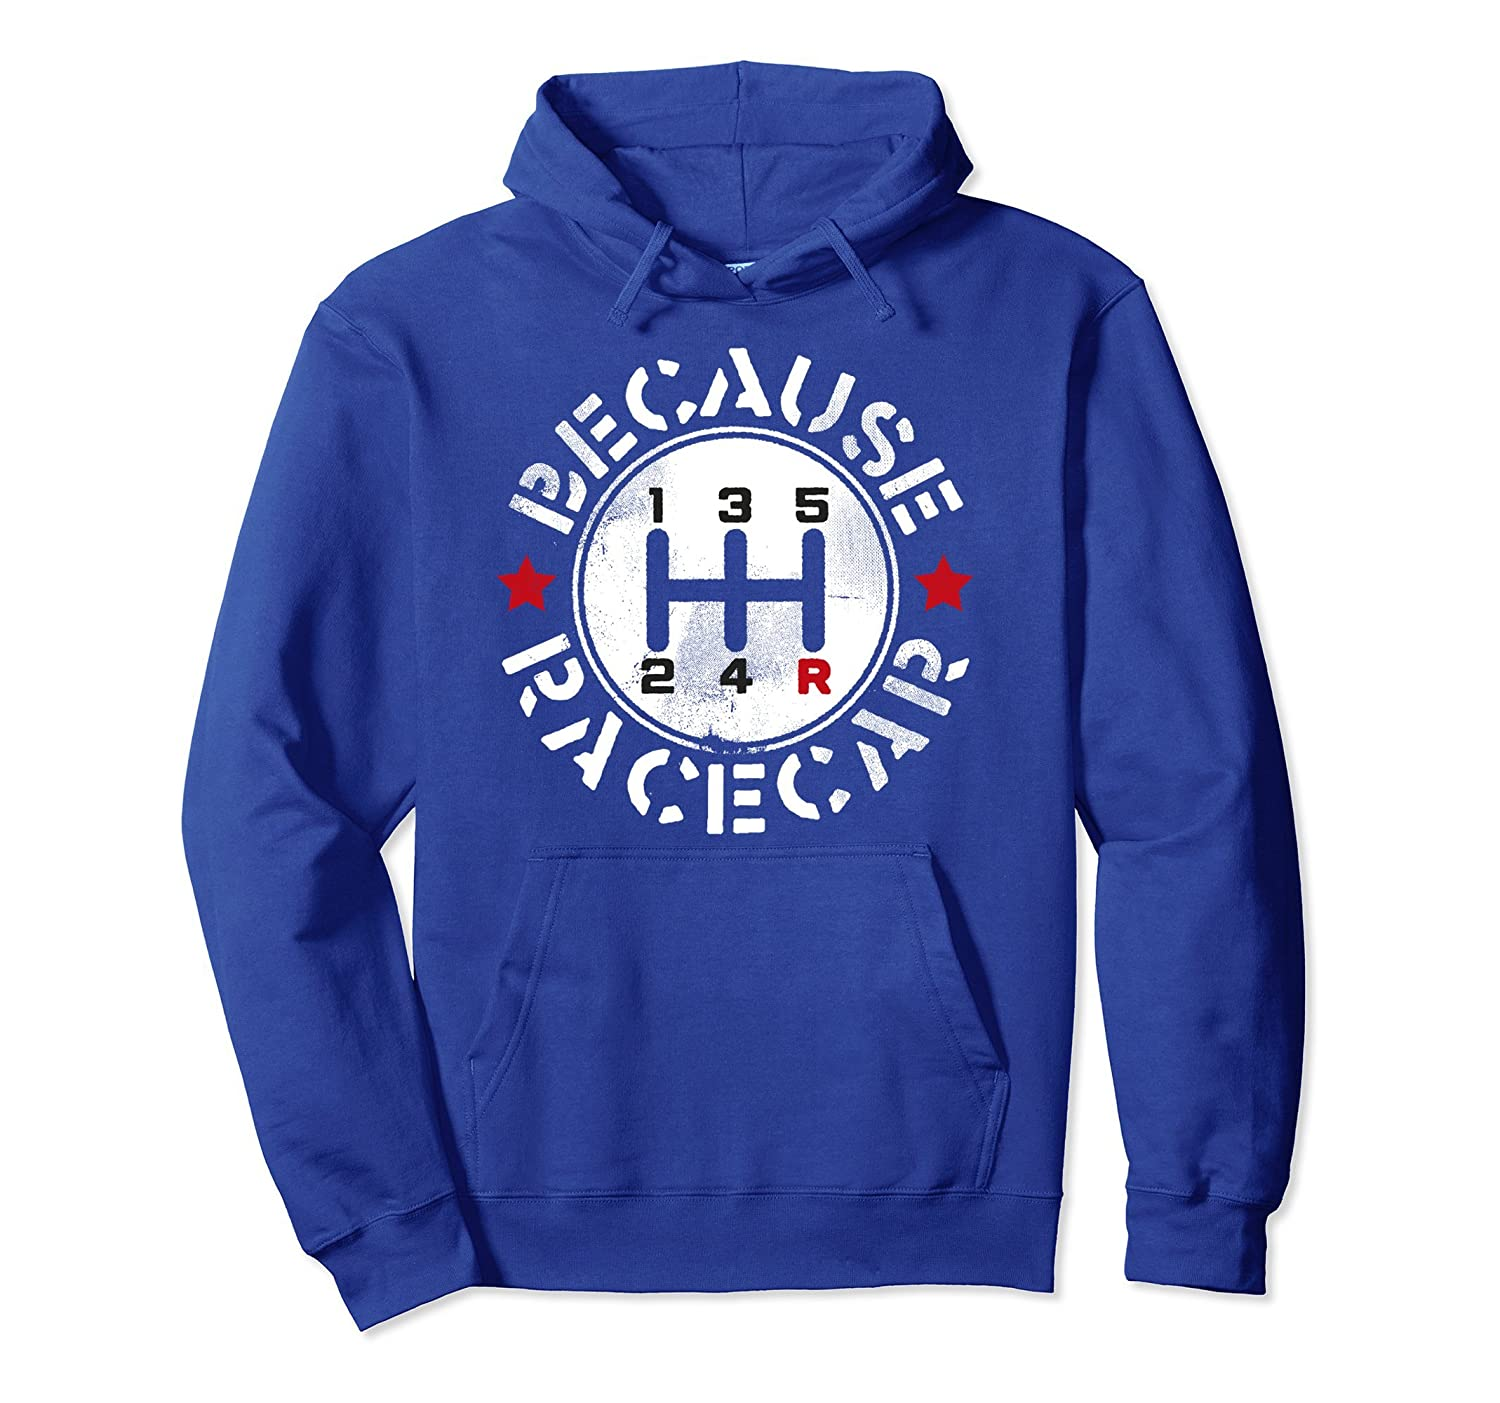 Three Pedals Manual Transmission Because Race Car Hoodie-Bawle